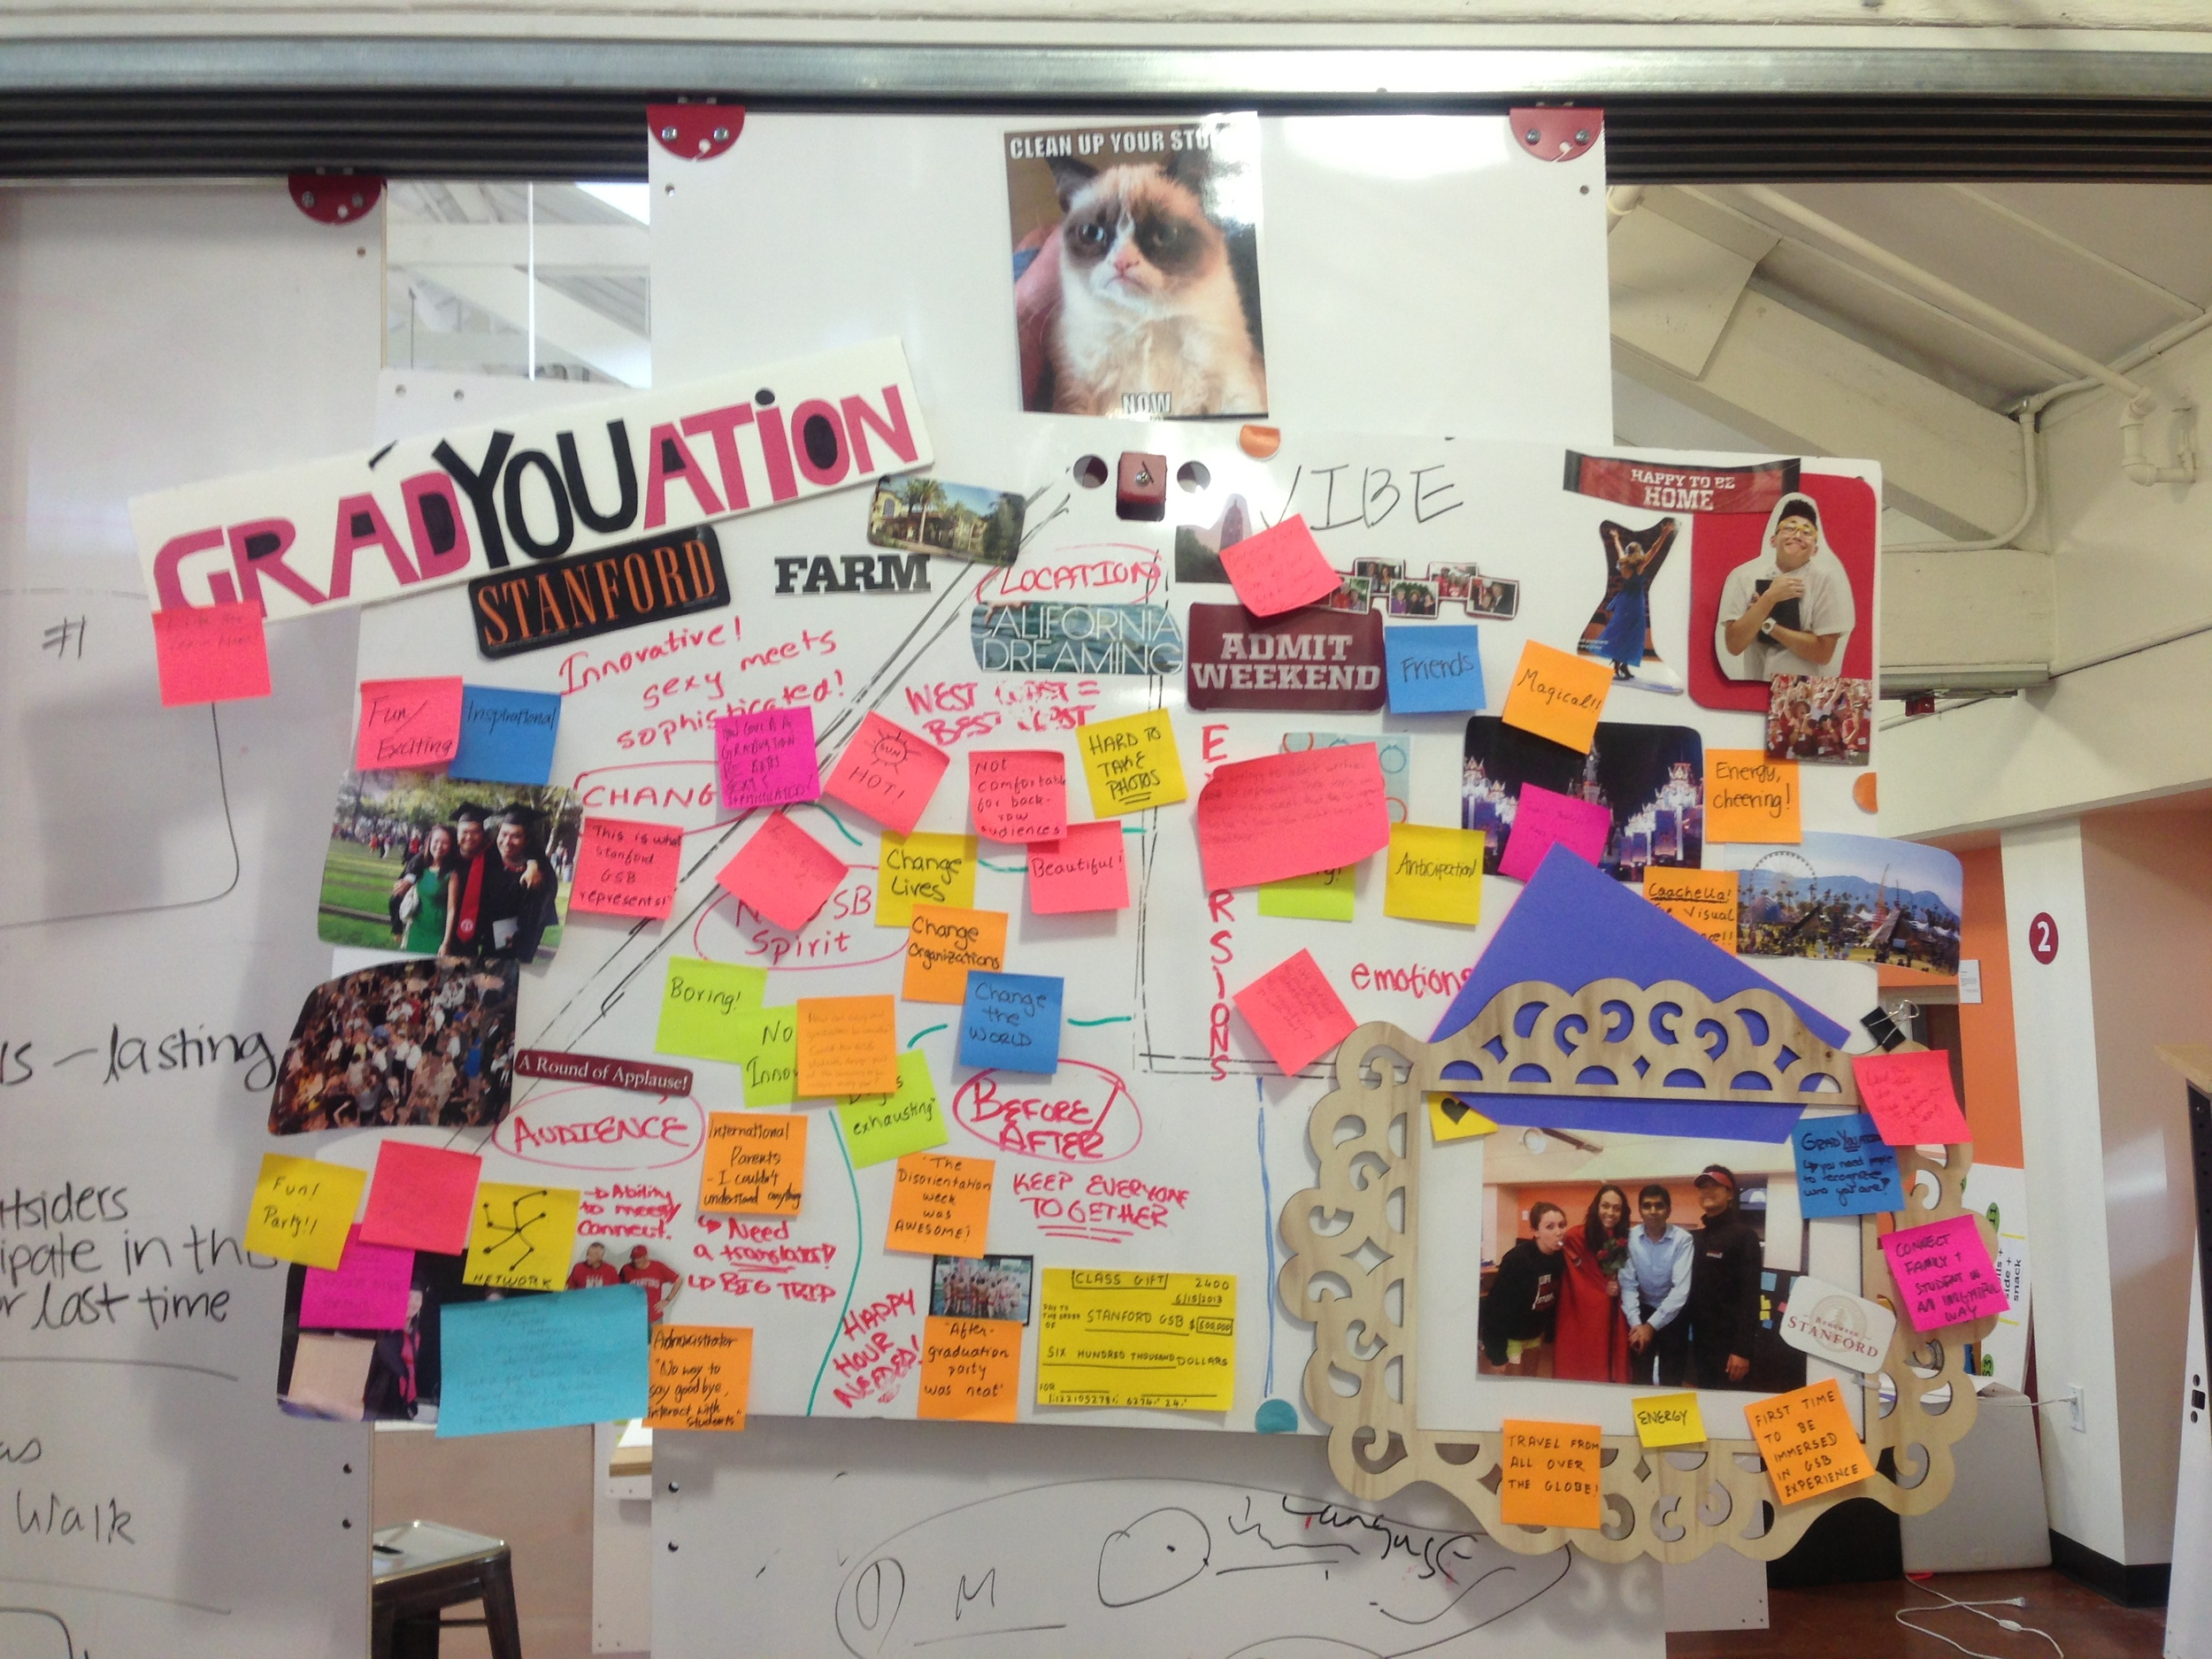 the d.school thrives on information sharing on using physical medium - post its, posters and white boards